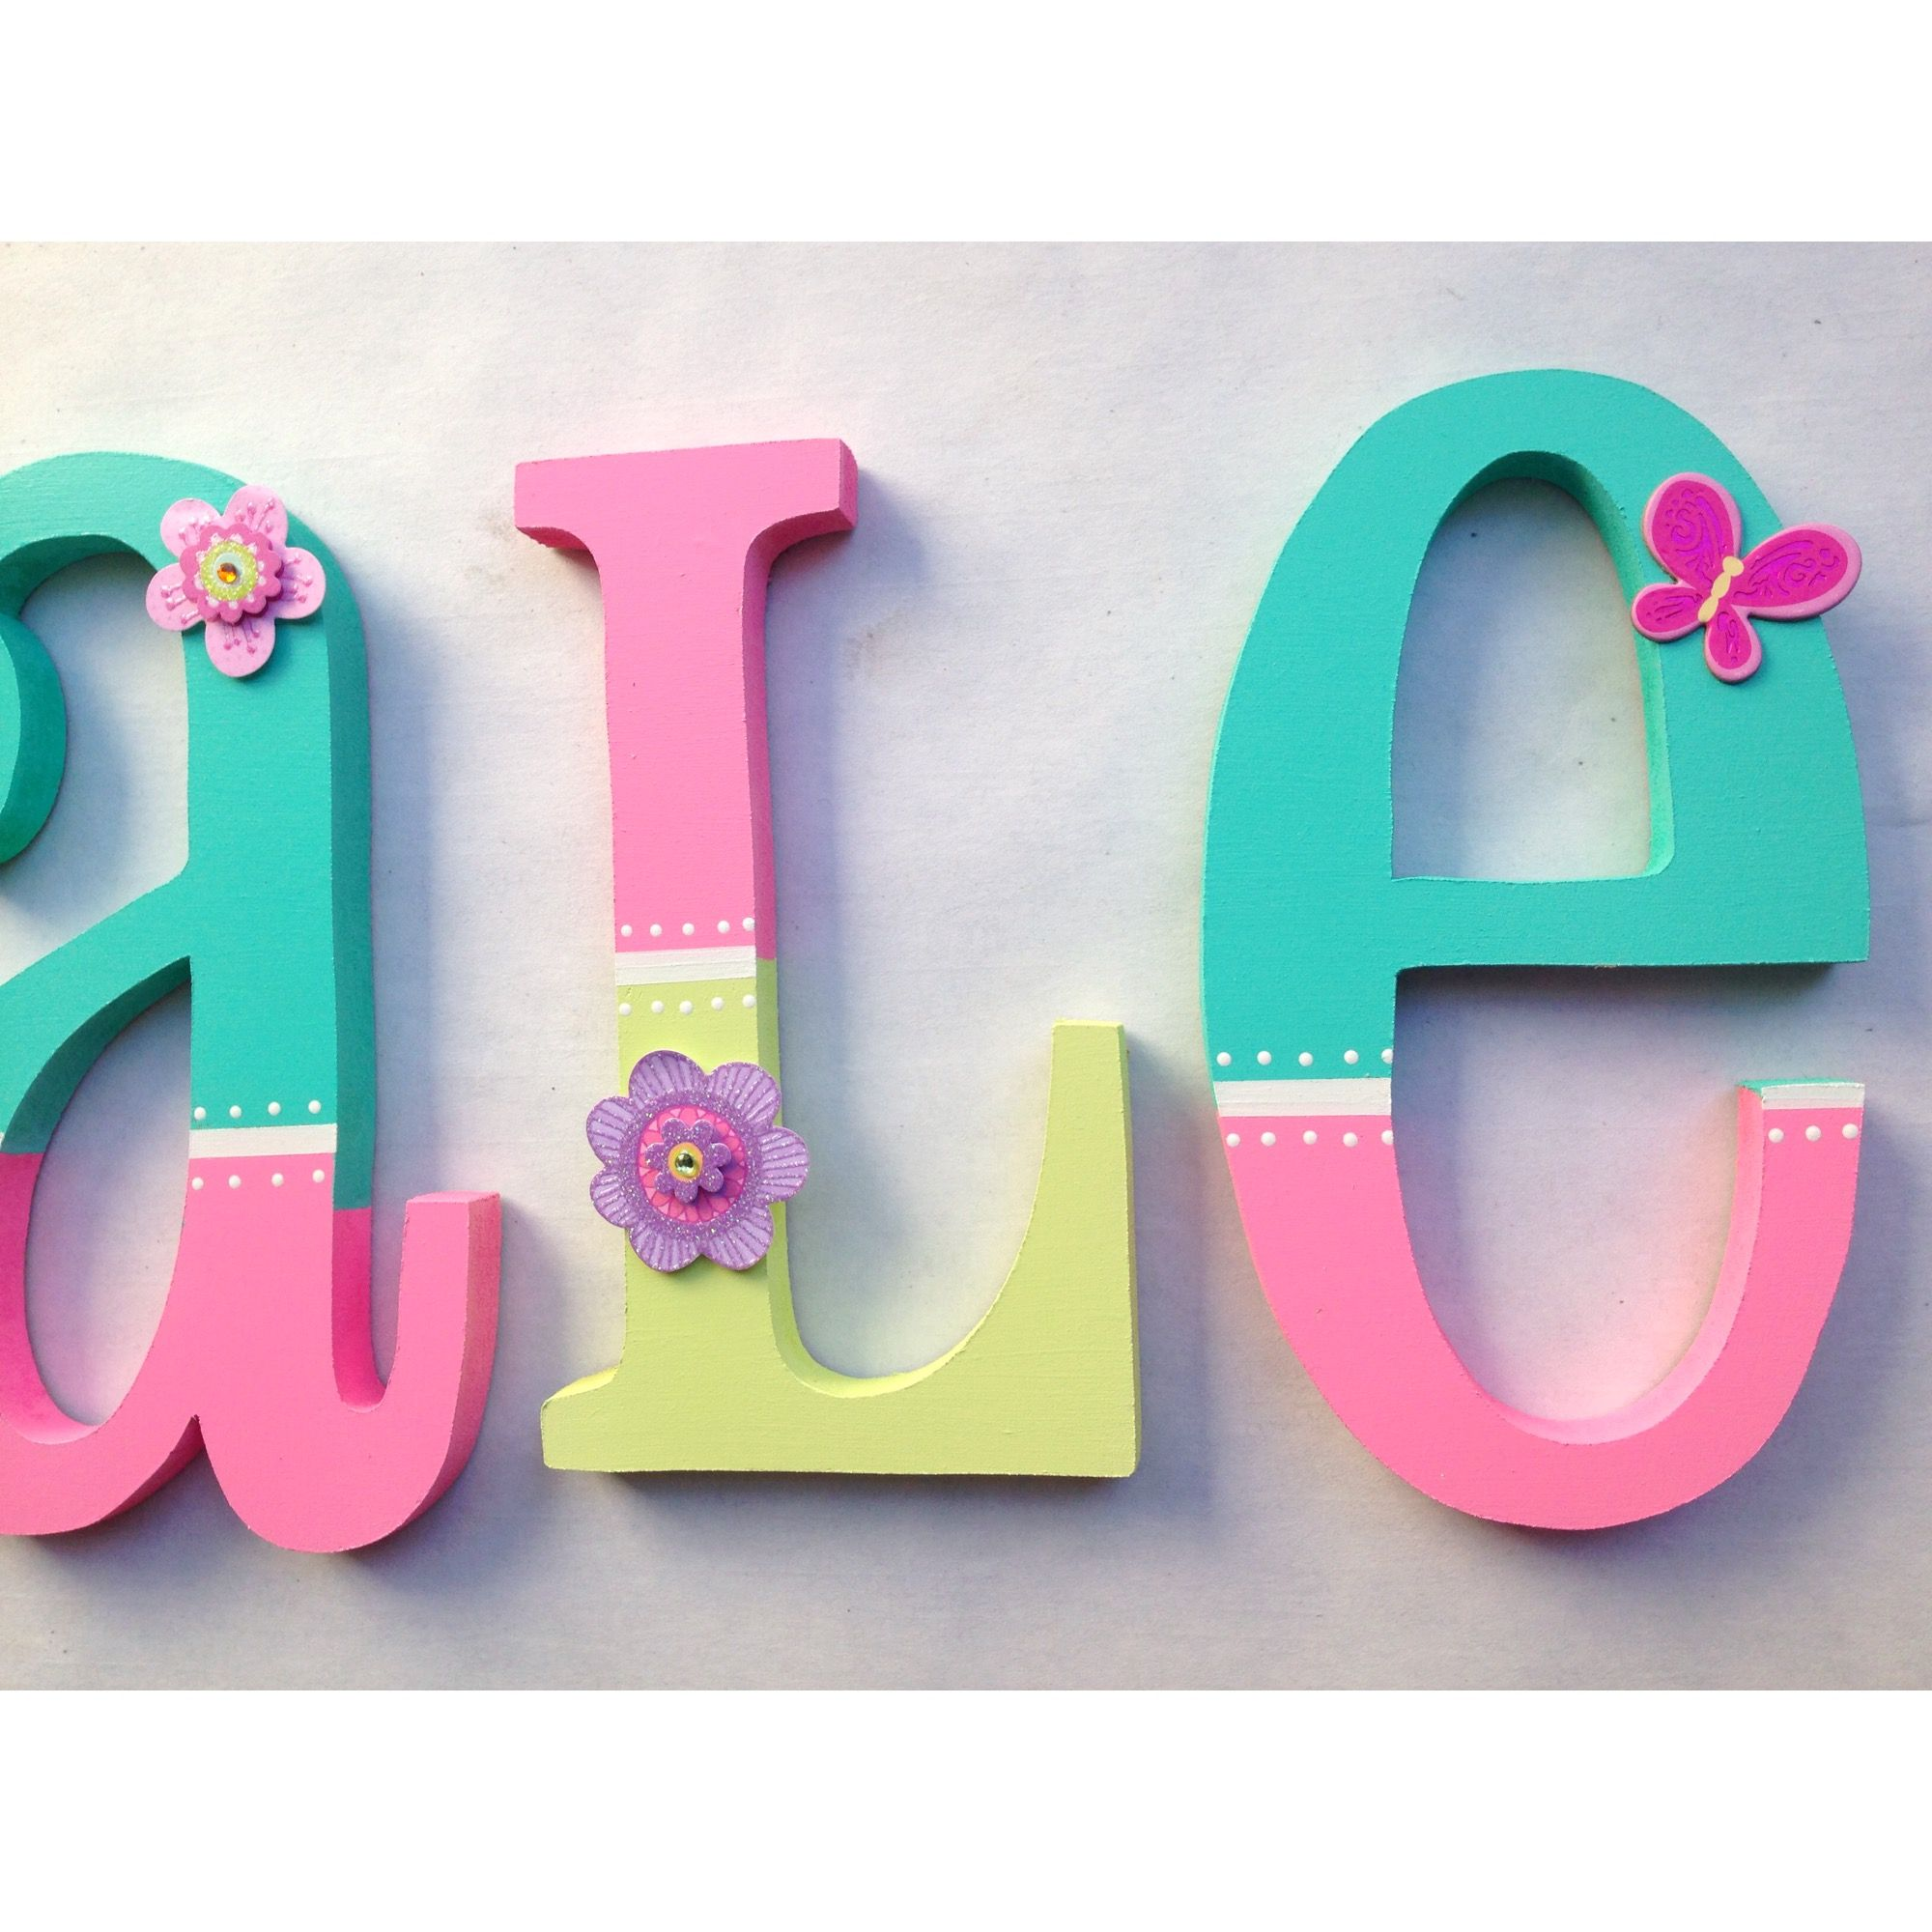 Nursery decor letters letras de madera para decorar on - Letras bebe decoracion ...